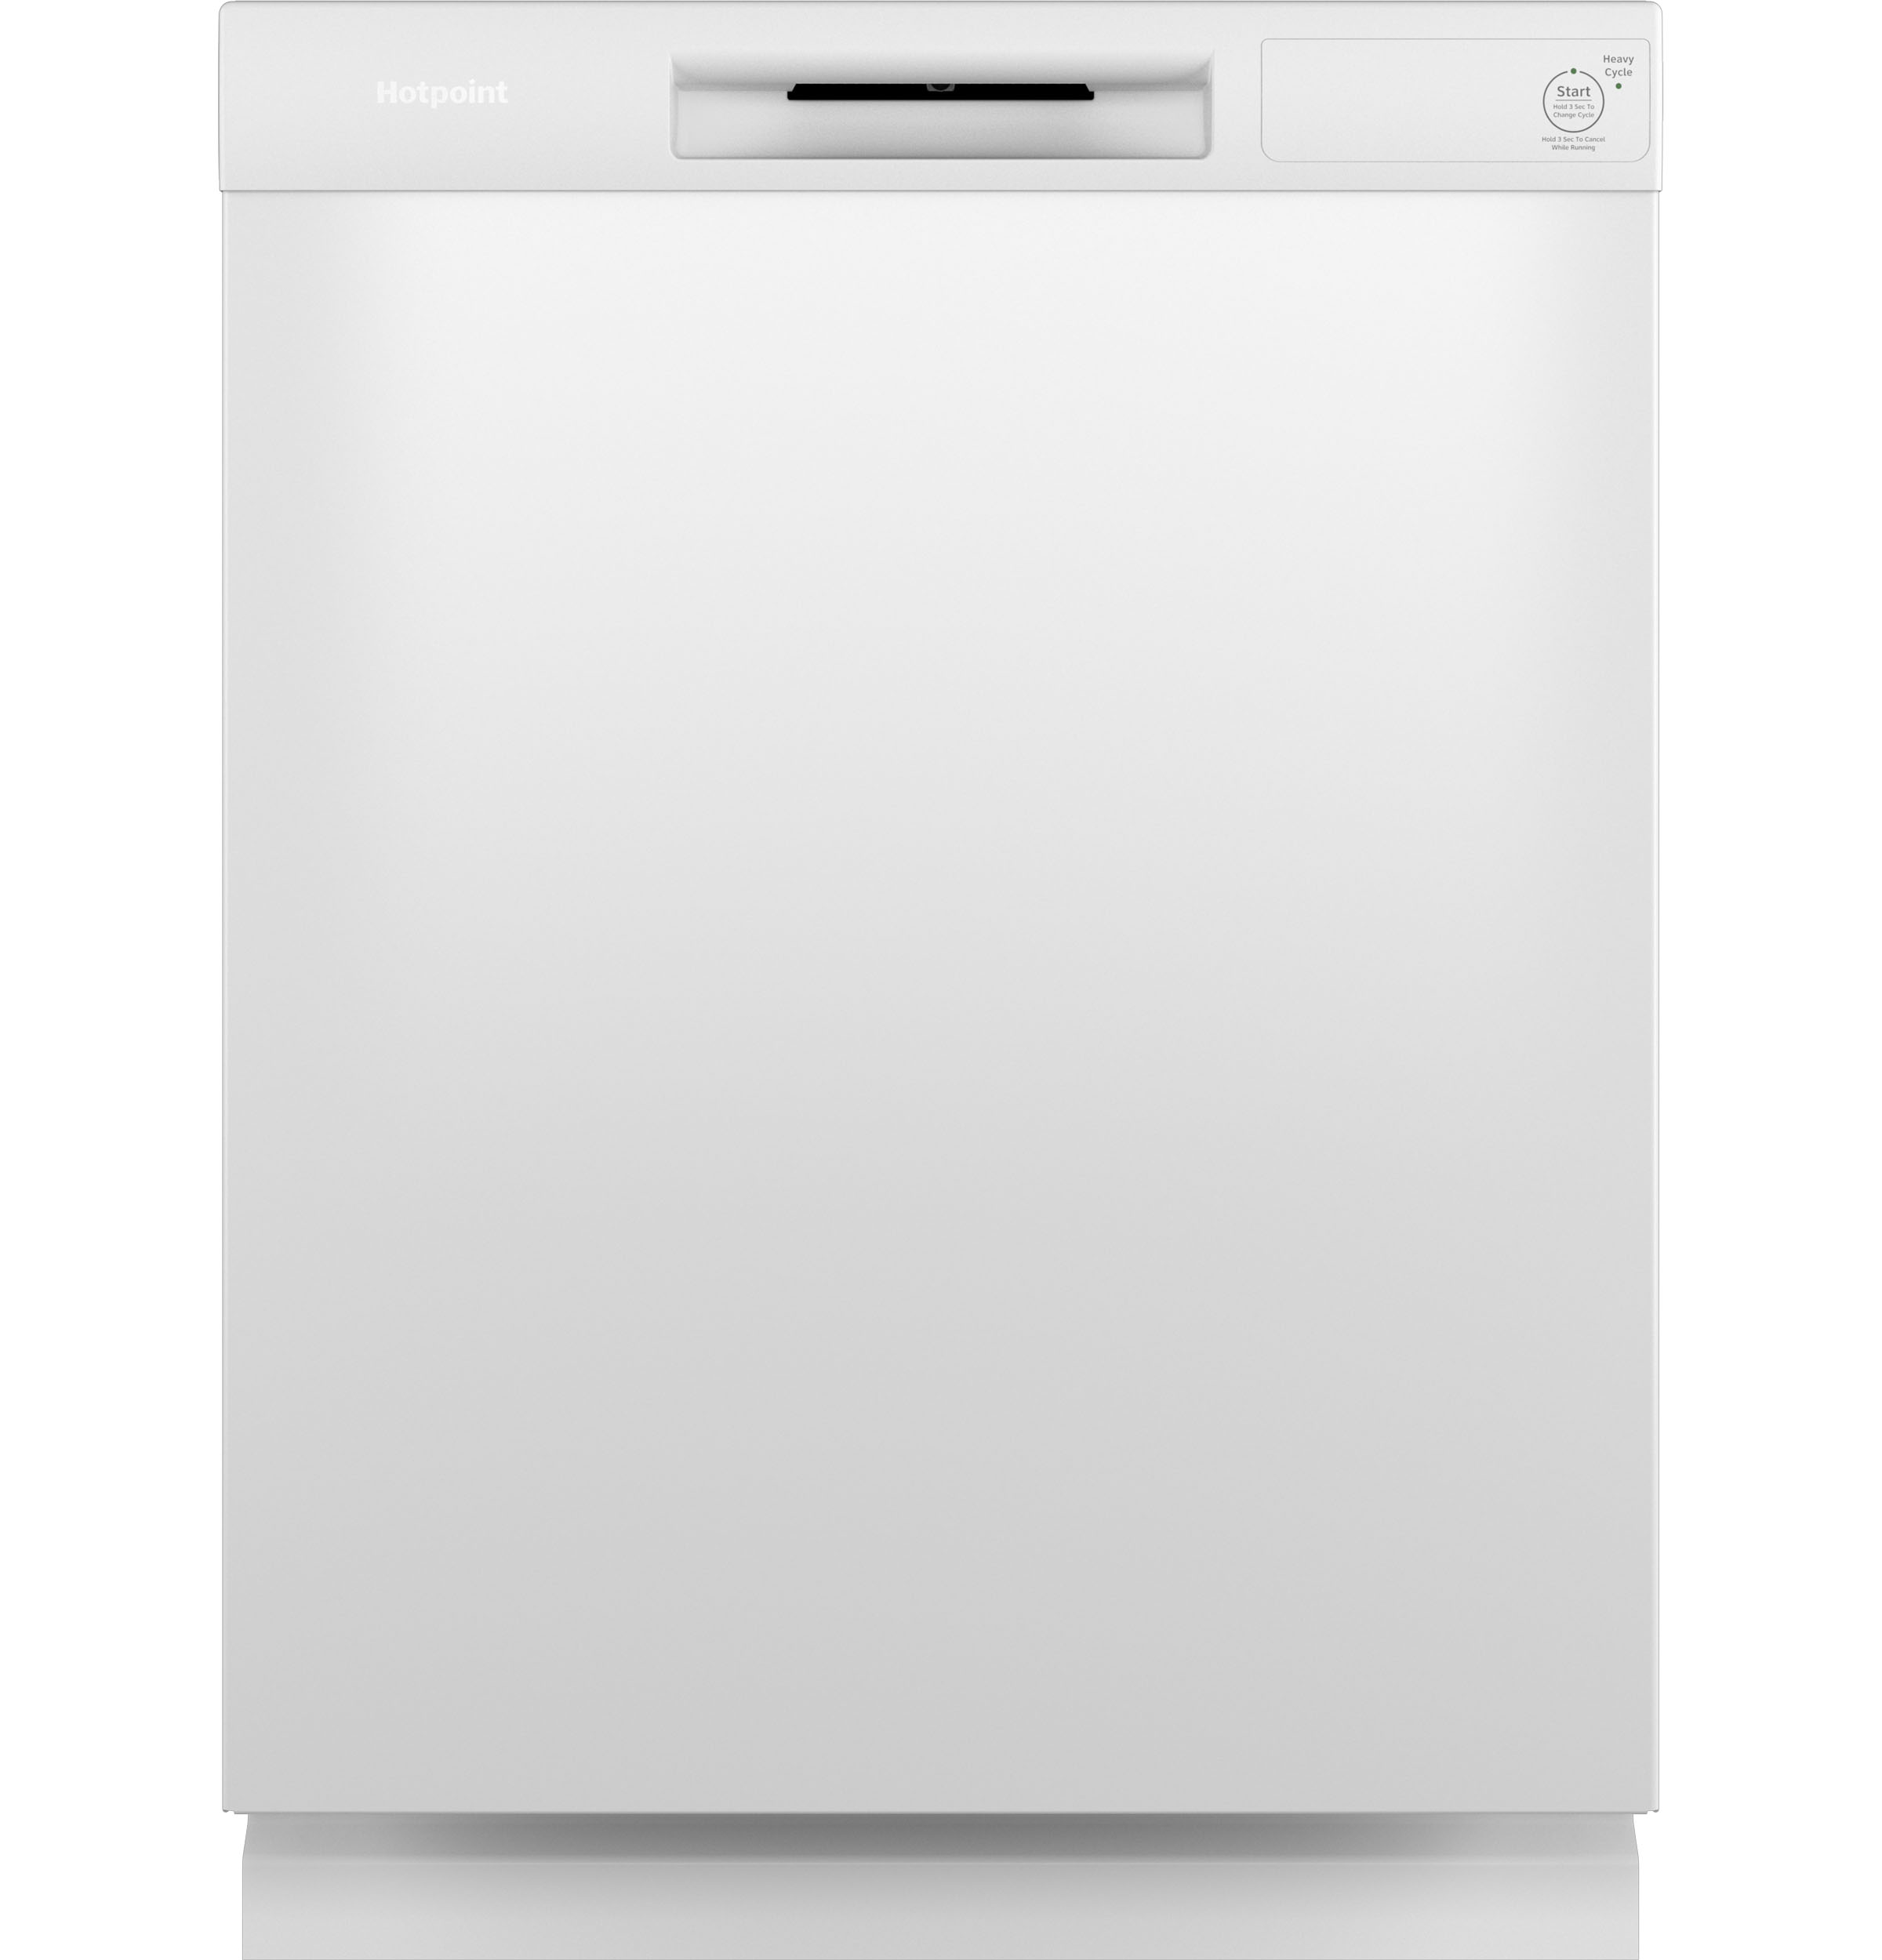 Hotpoint Hotpoint® One Button Dishwasher with Plastic Interior